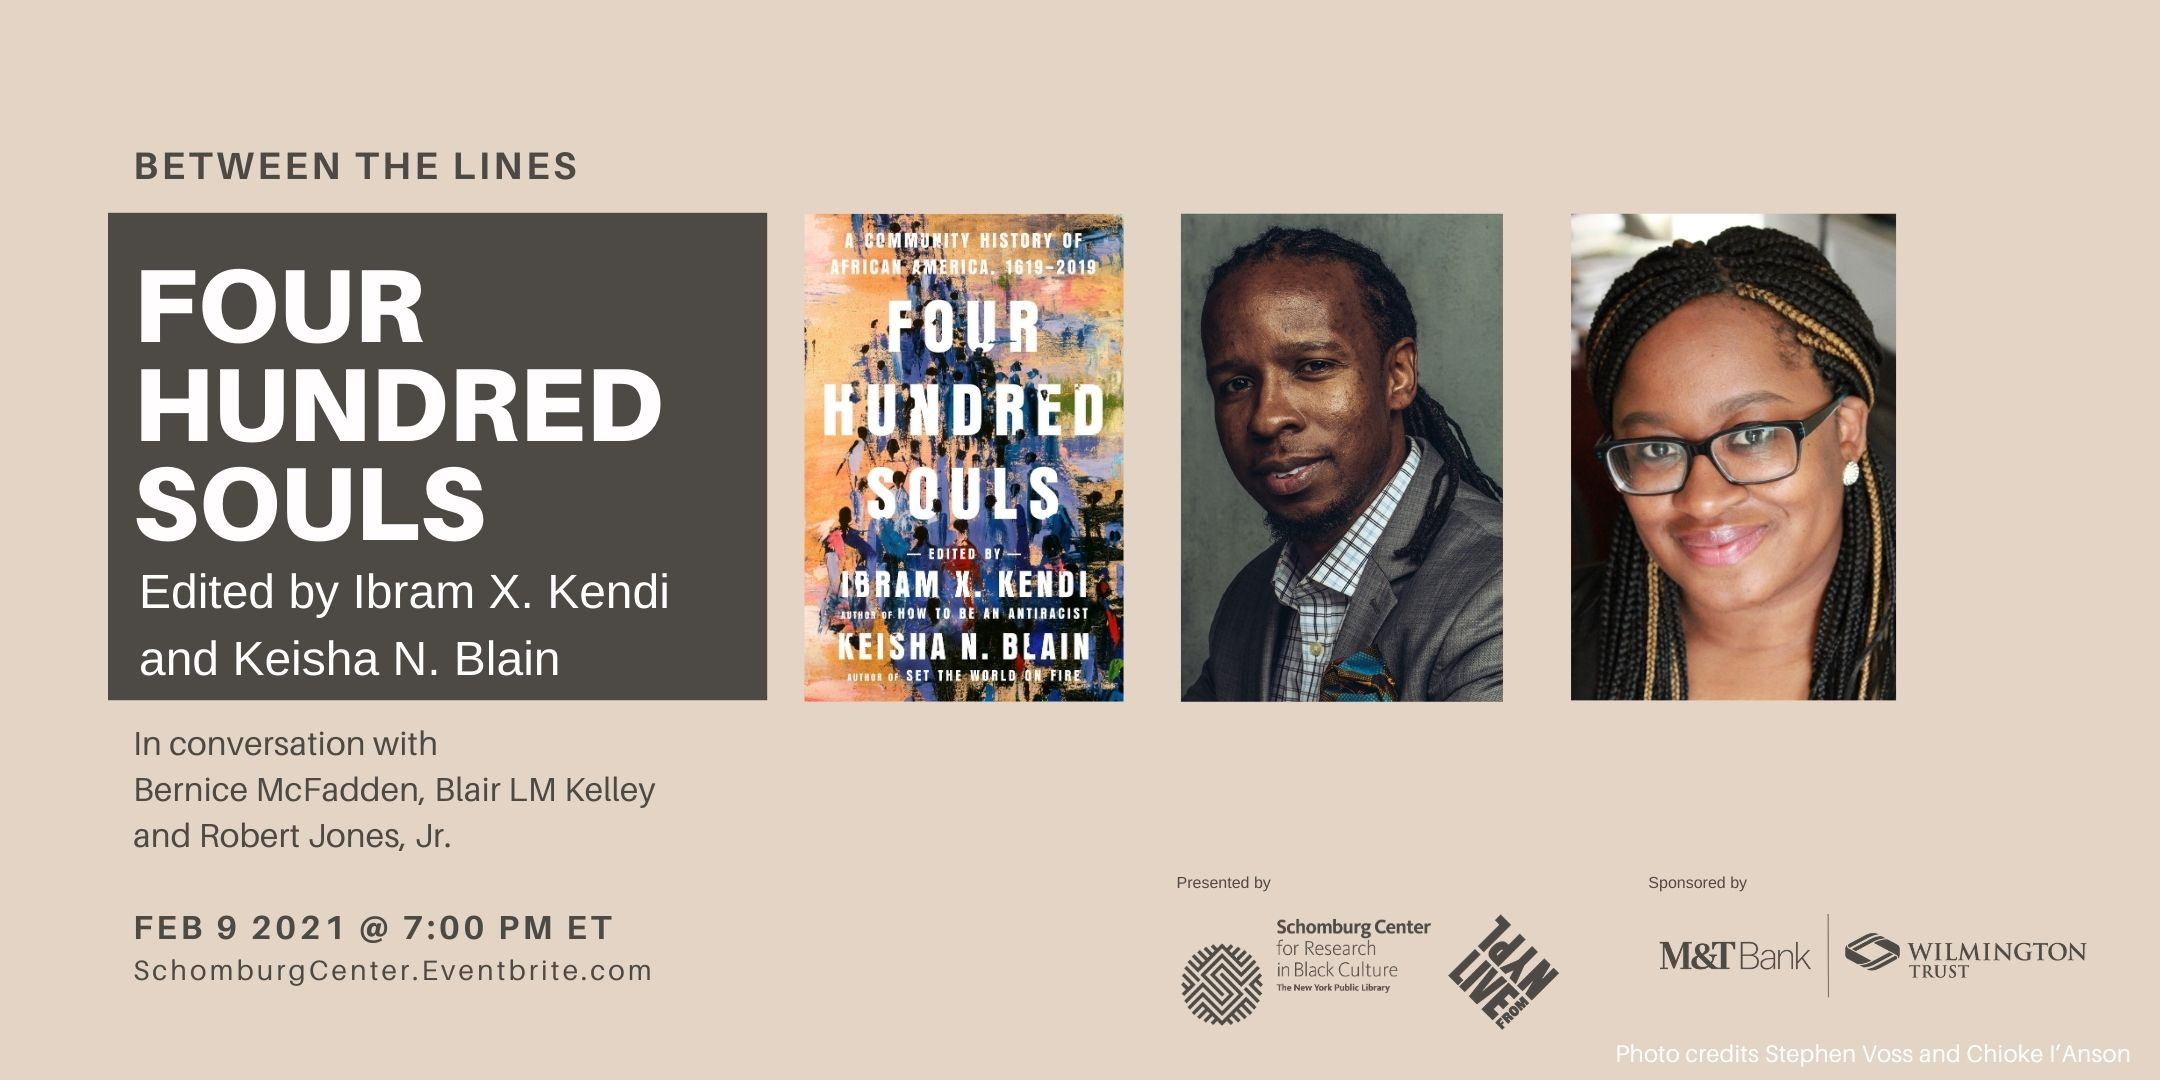 Between the Lines, Black History Month, LIVE from NYPL: Four Hundred Souls by Ibram X. Kendi and Keisha N. Blain